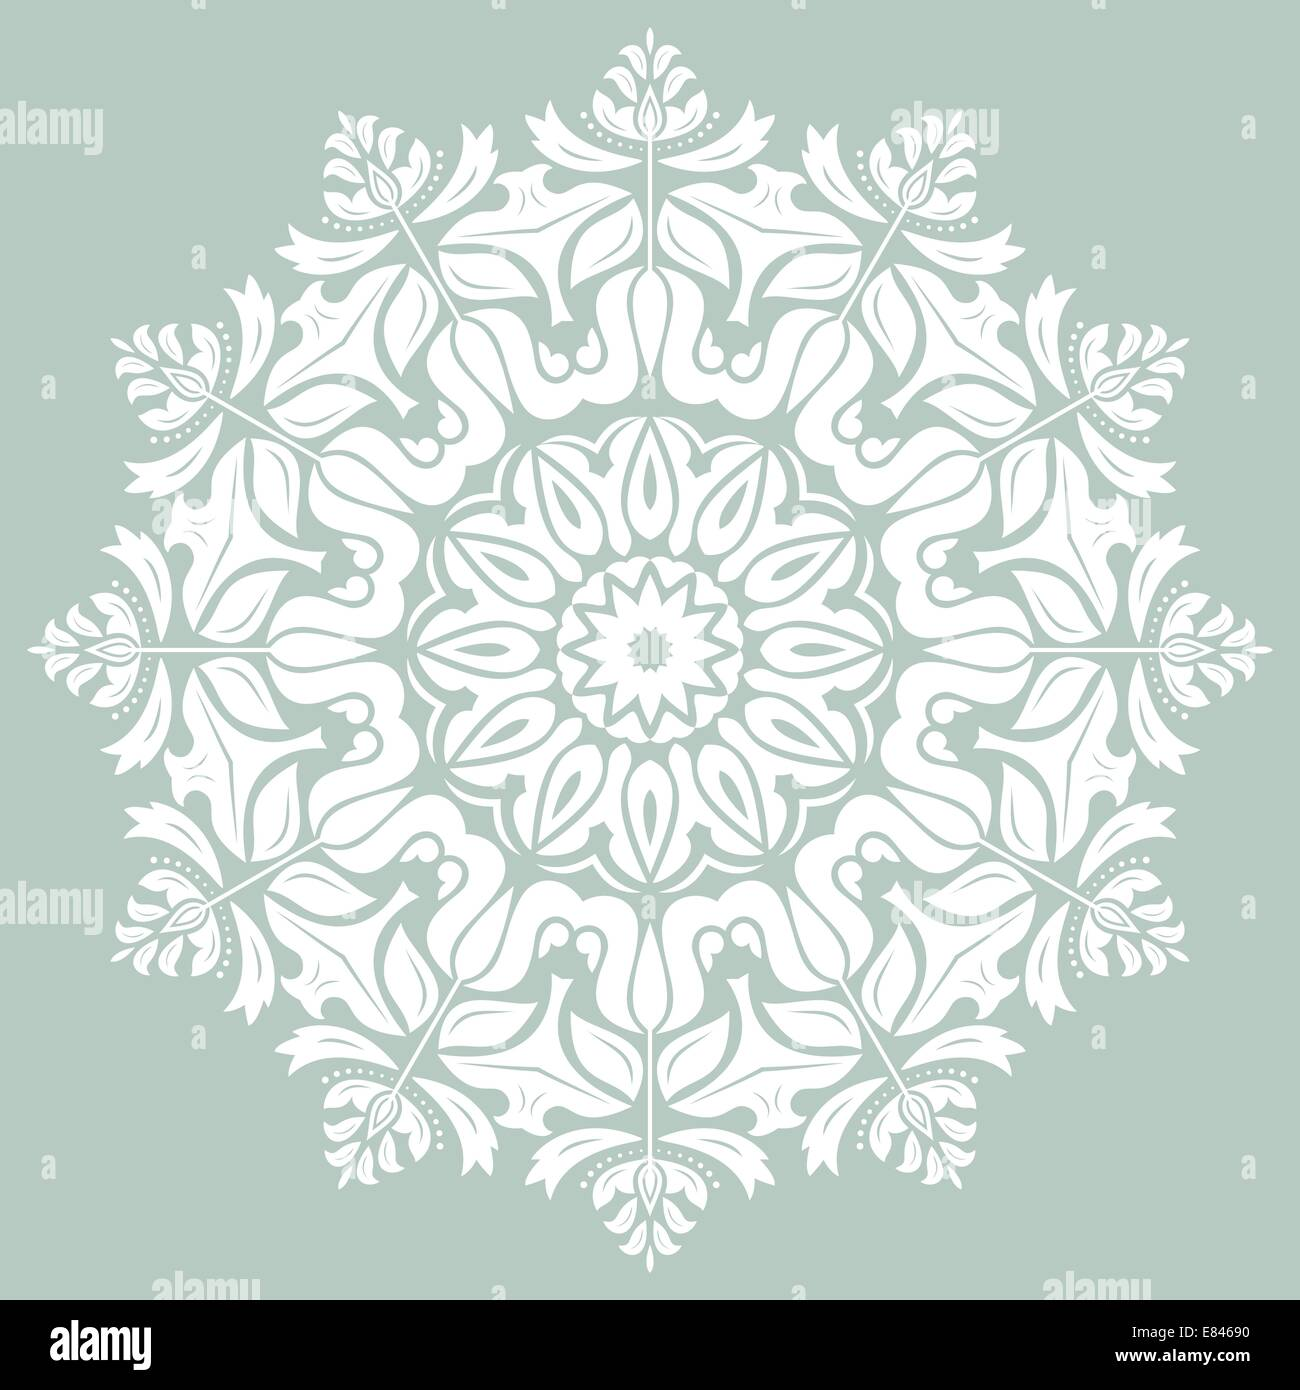 Oriental vector pattern with damask, arabesque and floral elements. Abstract background - Stock Image